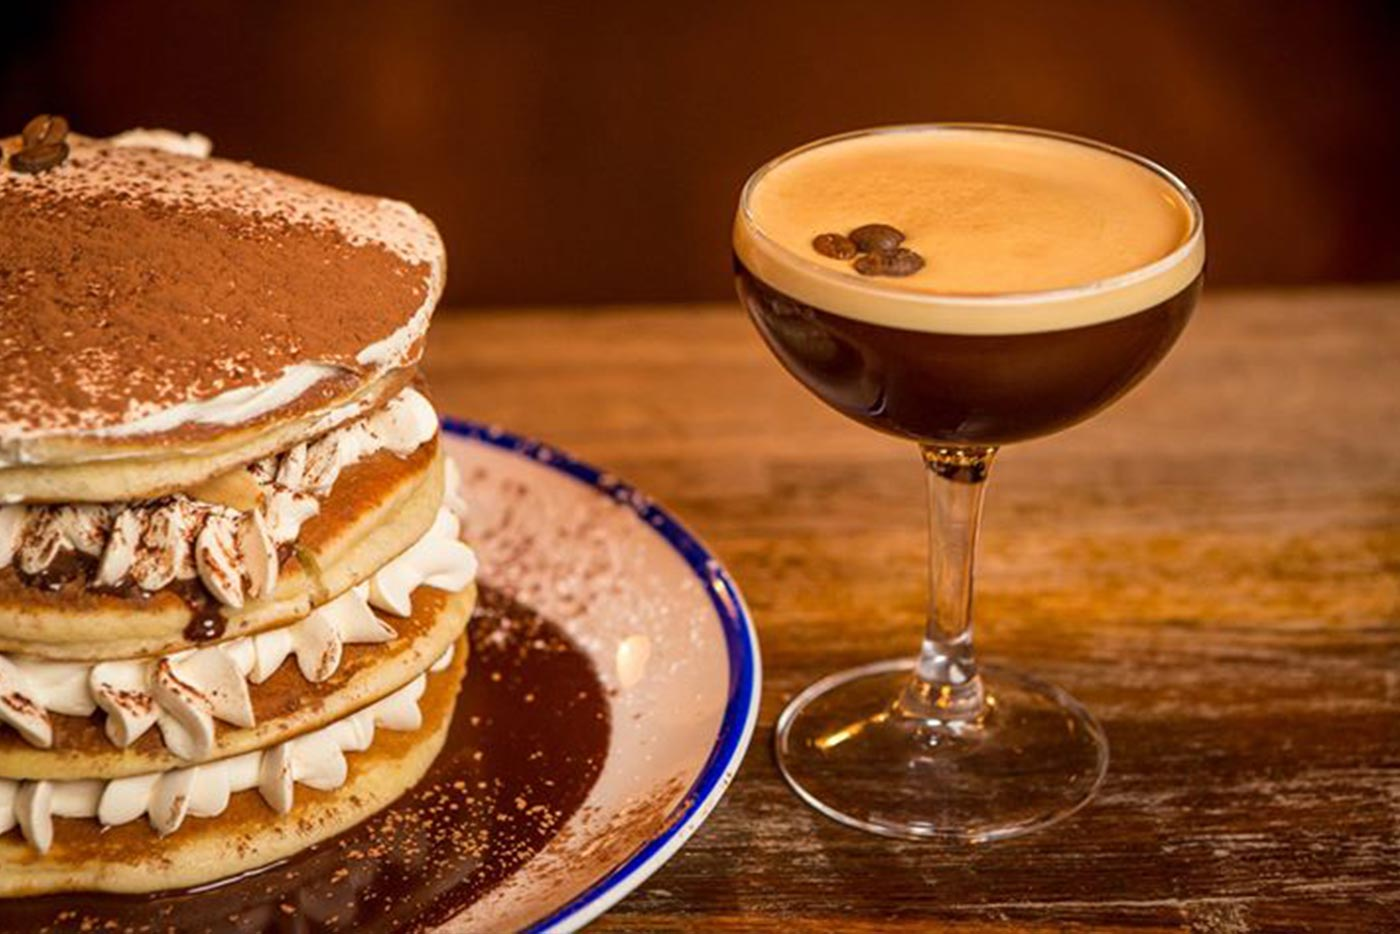 Queen of Hoxton | Best Pancakes for Pancake Day